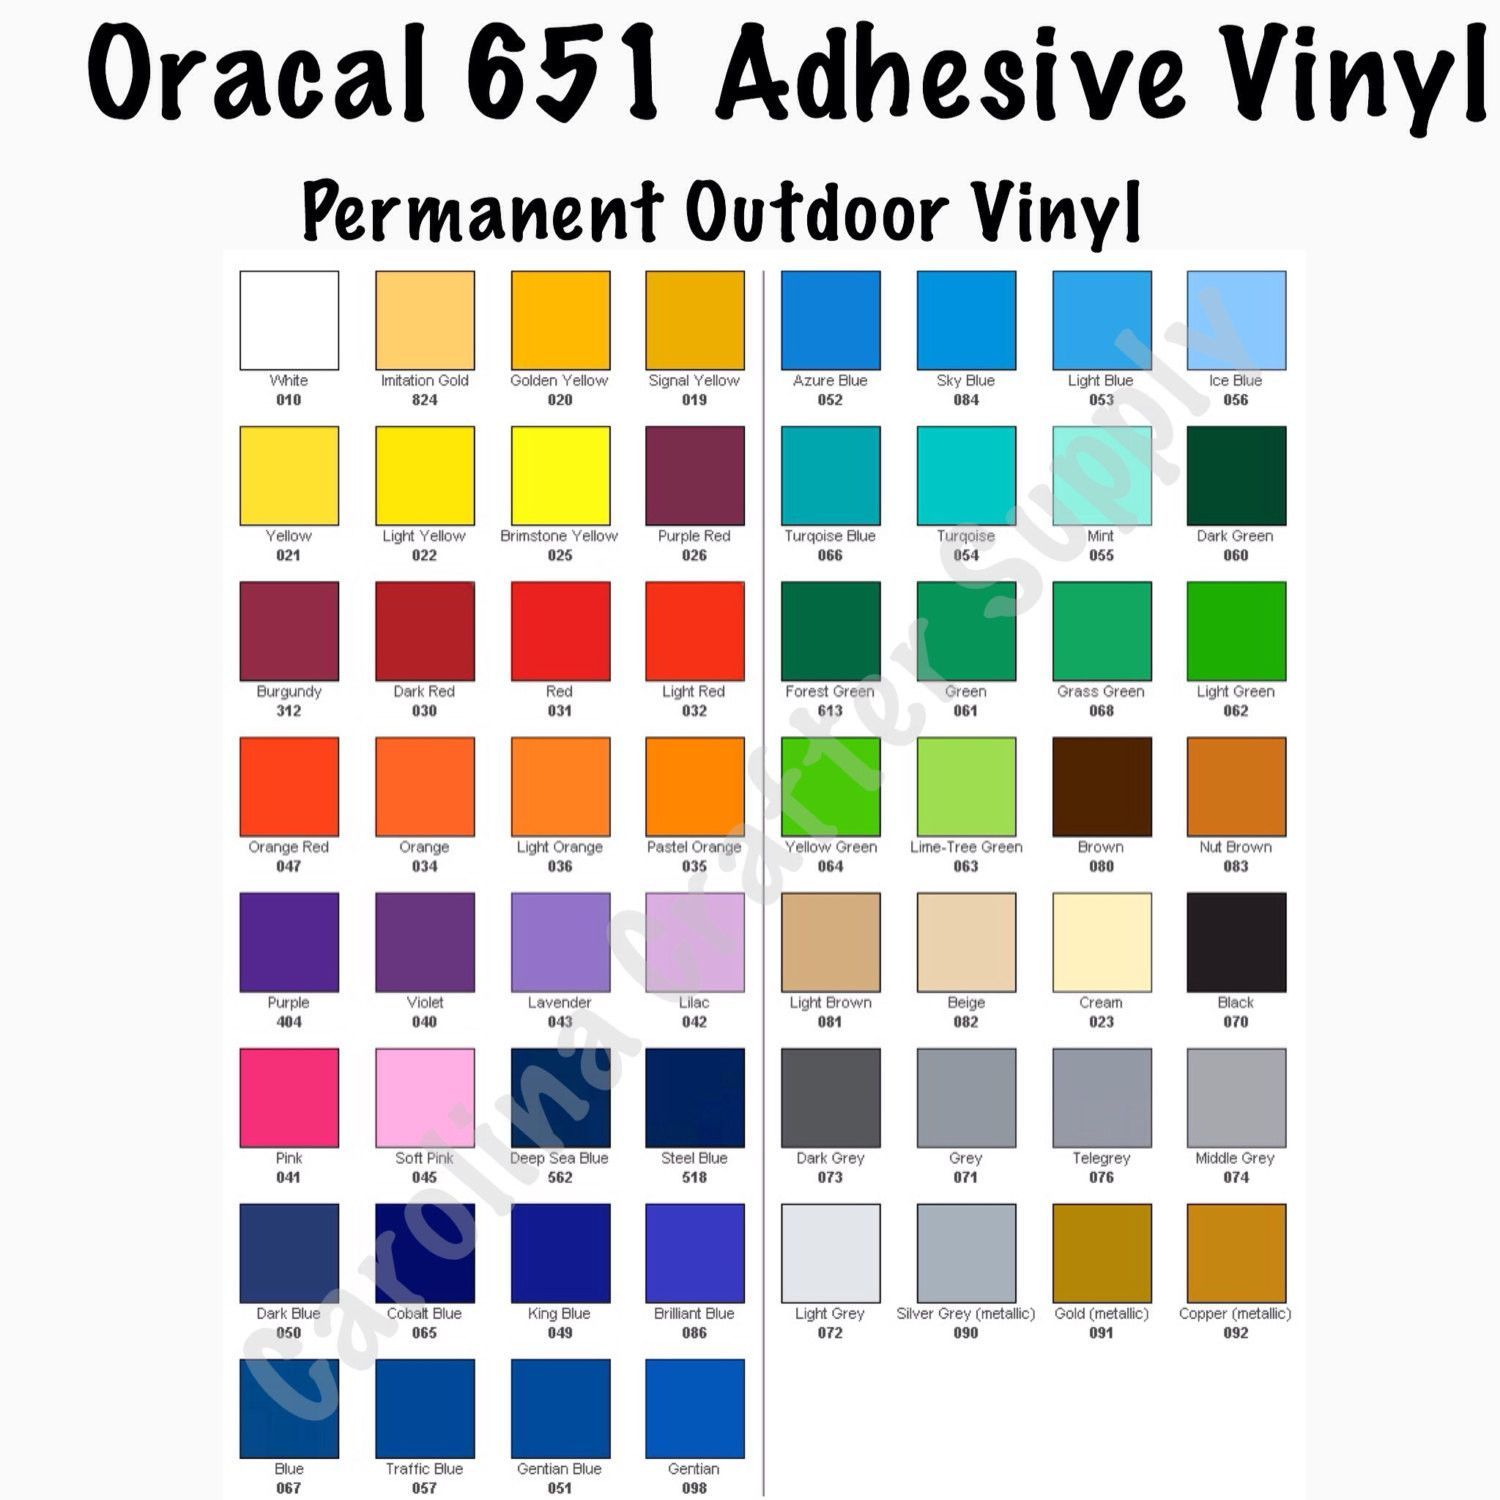 Oracal 651 12x12 Sheets Adhesive Vinyl Pick Your Color Decal Vinyl Gloss Vinyl Craft Vinyl Vinyl Sheets Metallic Colors Available Adhesive Vinyl Vinyl Crafts Vinyl